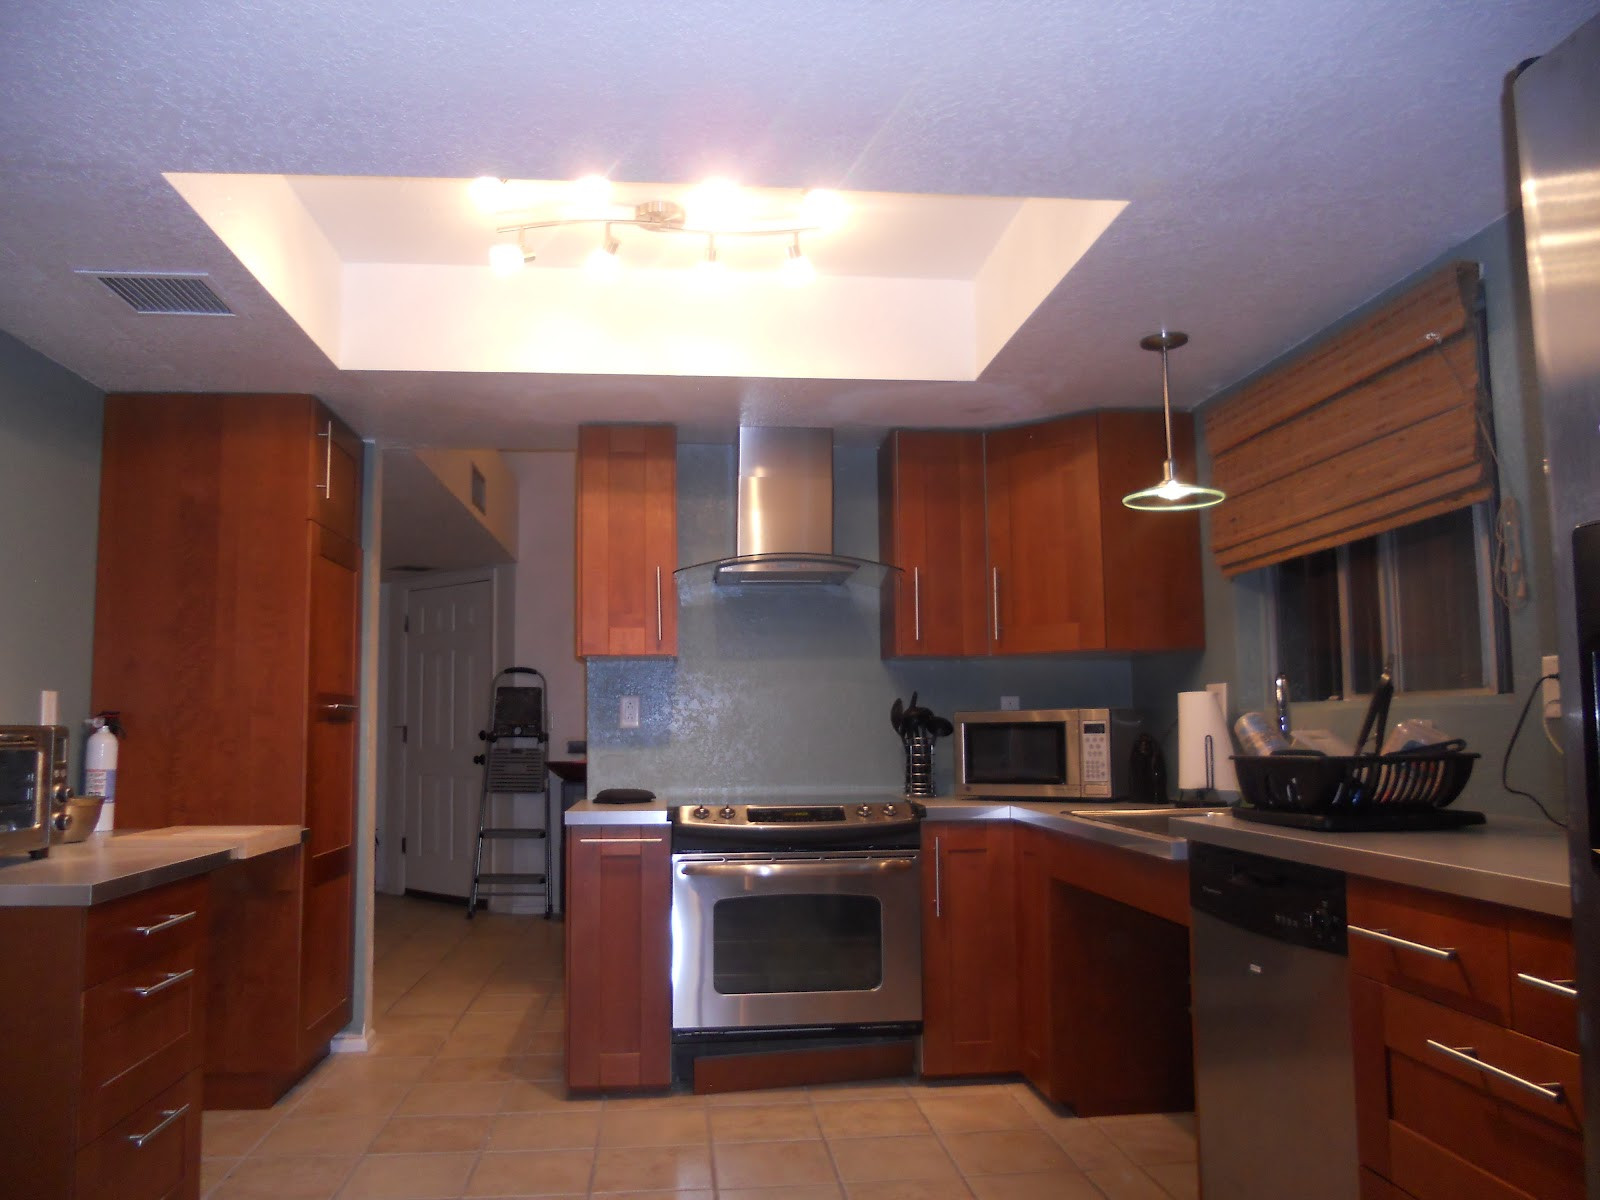 Best ideas about Ceiling Lights For Kitchen . Save or Pin Glamorous Lighting using fluorescent ceiling lights Now.